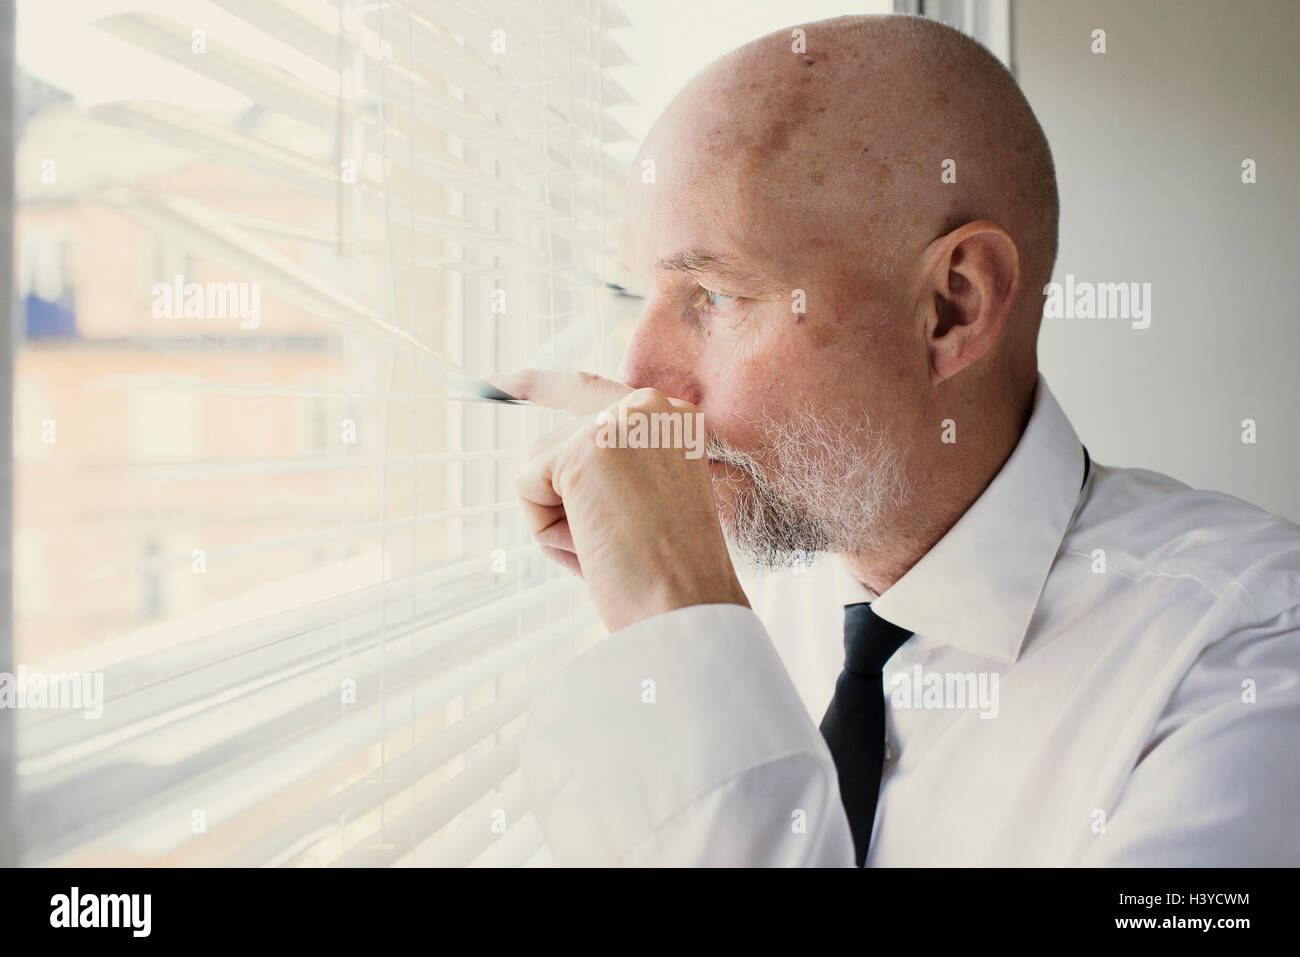 Man Peering Out Window Stock Photos Man Peering Out Window Stock